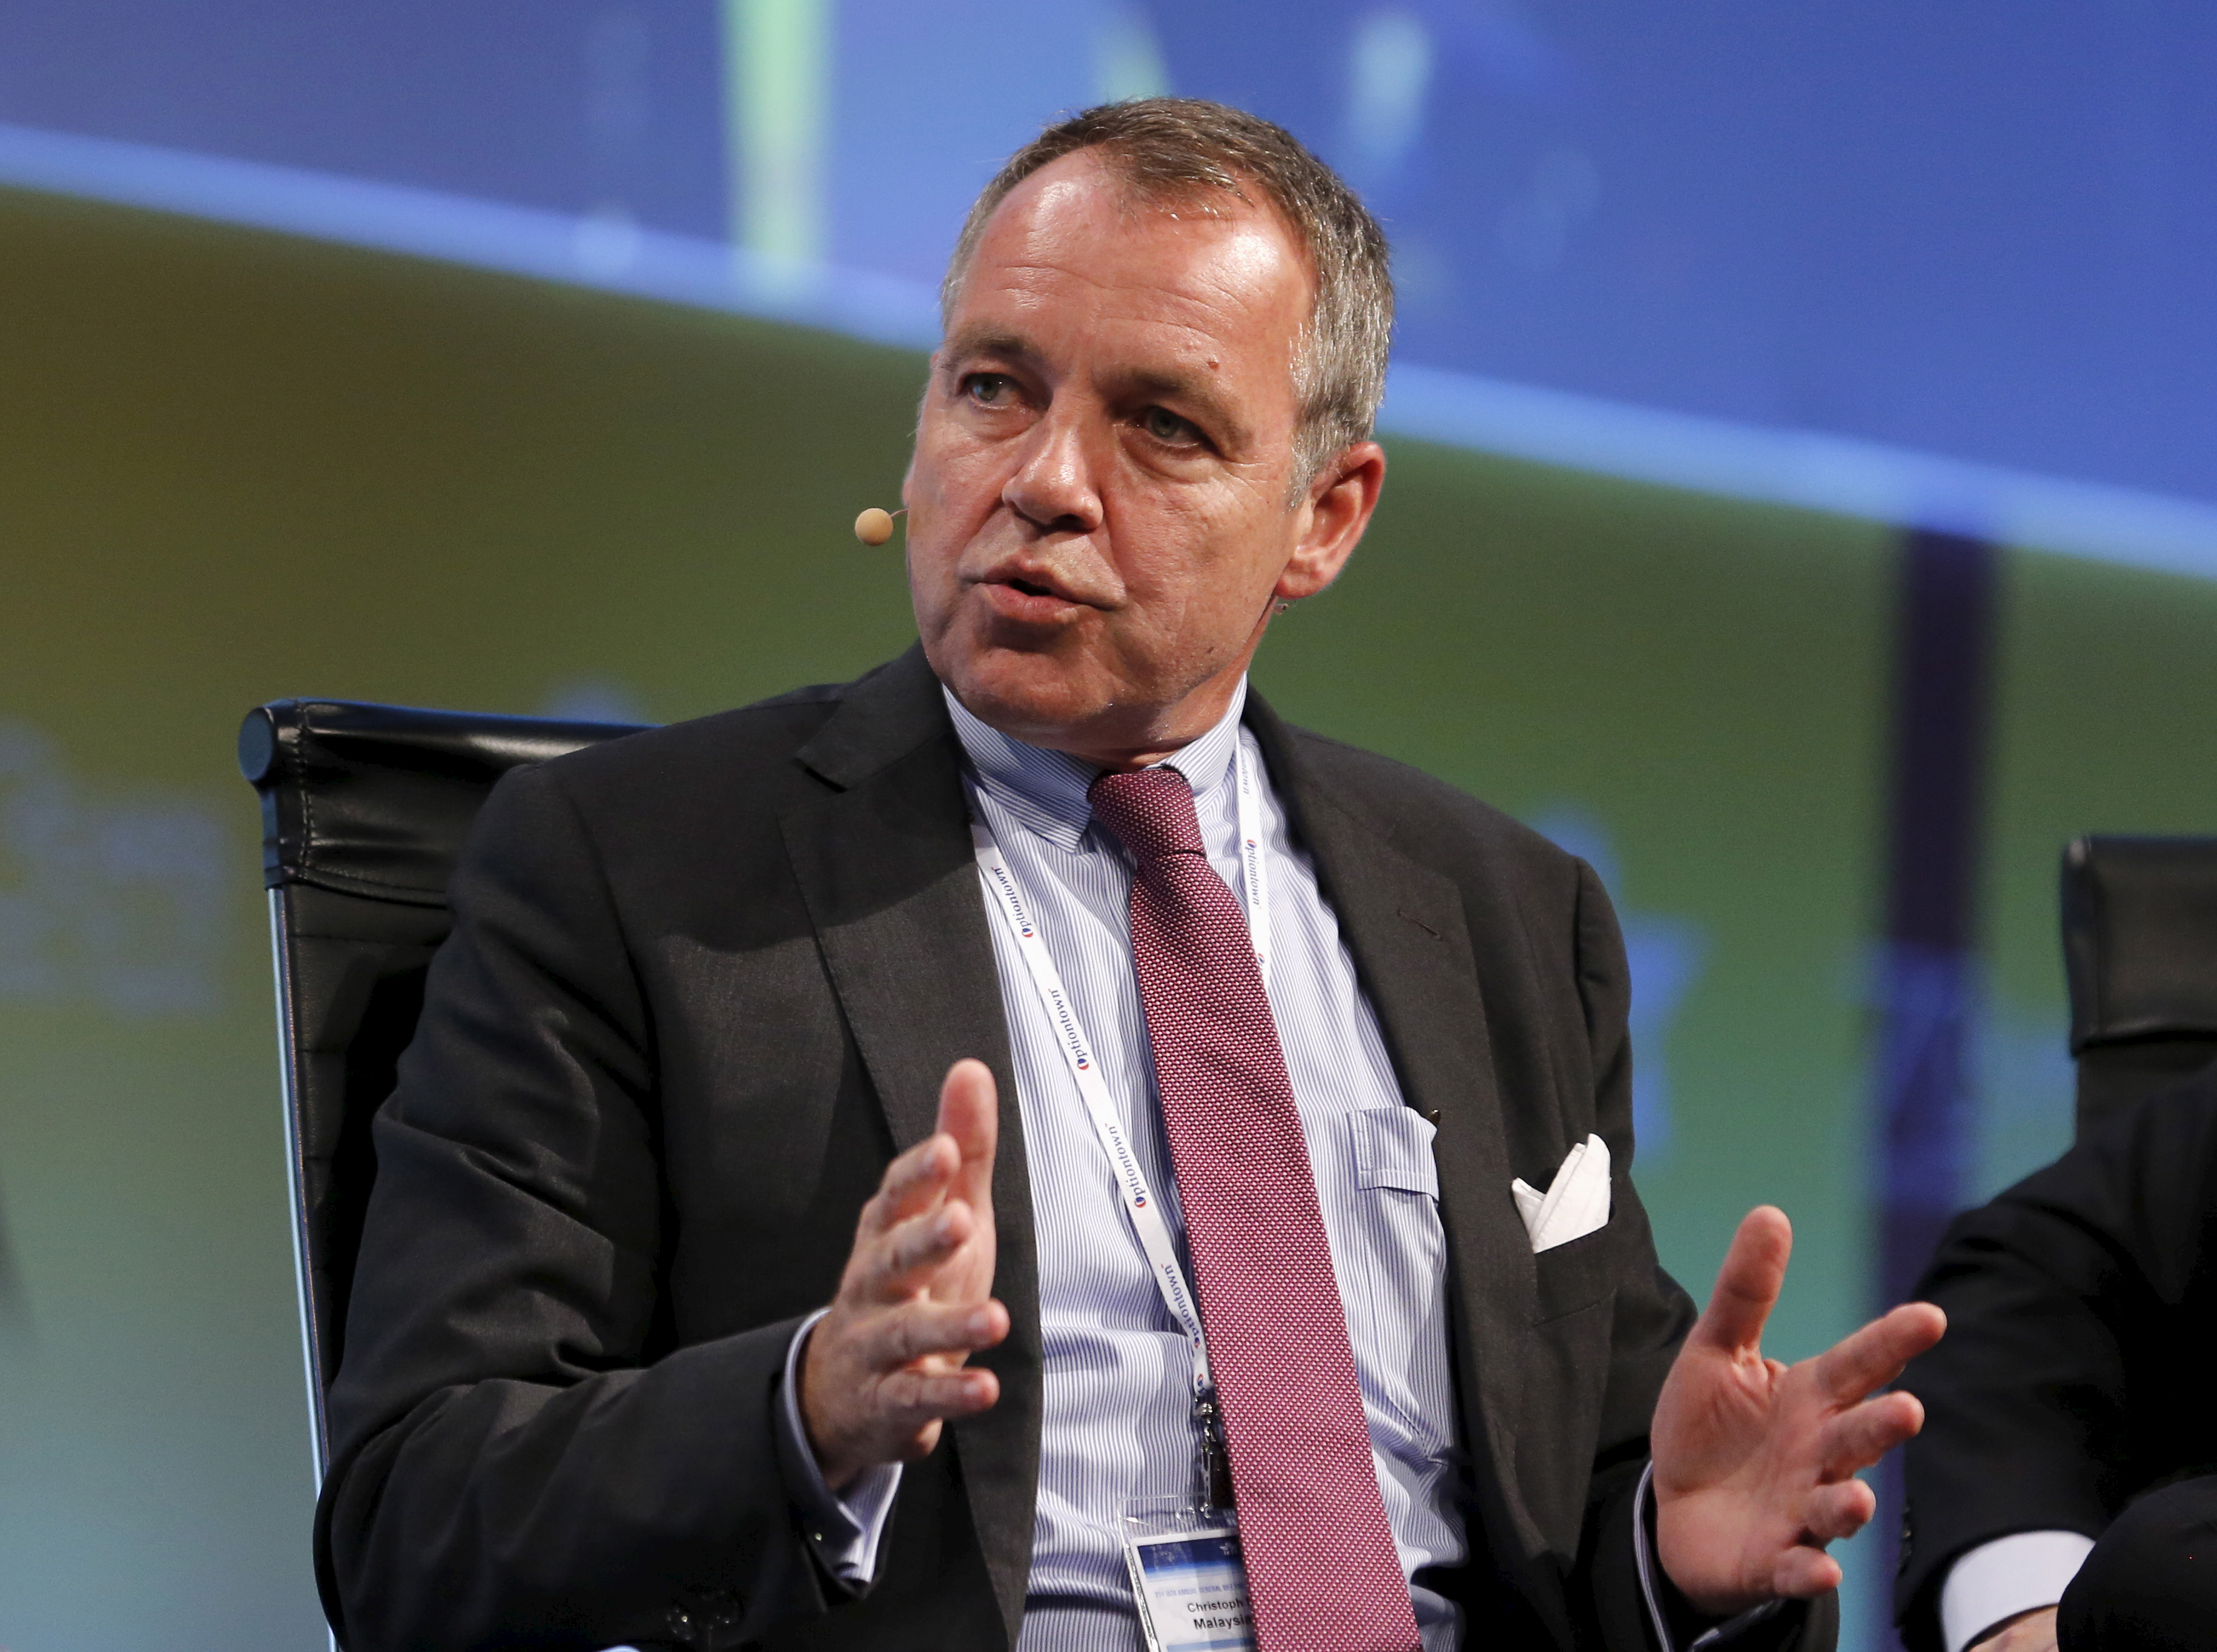 Christoph Mueller, CEO of Malaysia Airlines, speaks during a panel discussion at the 2015  International Air Transport Association (IATA) Annual General Meeting and World Air Transport Summit in Miami Beach on June 8, 2015